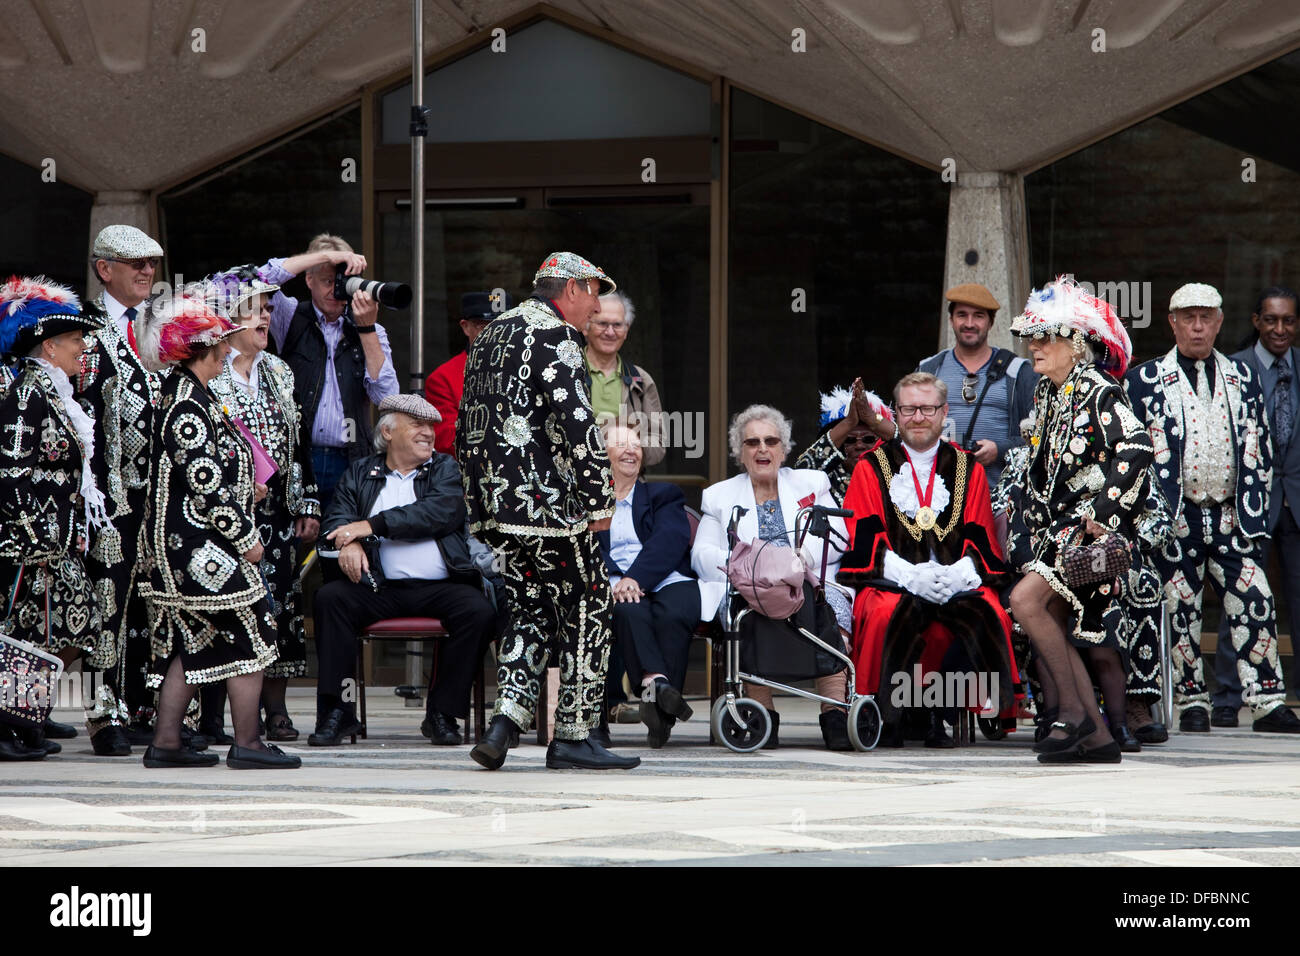 The Pearly Kings and Queens Society Costermongers Harvest Festival, London, England - Stock Image